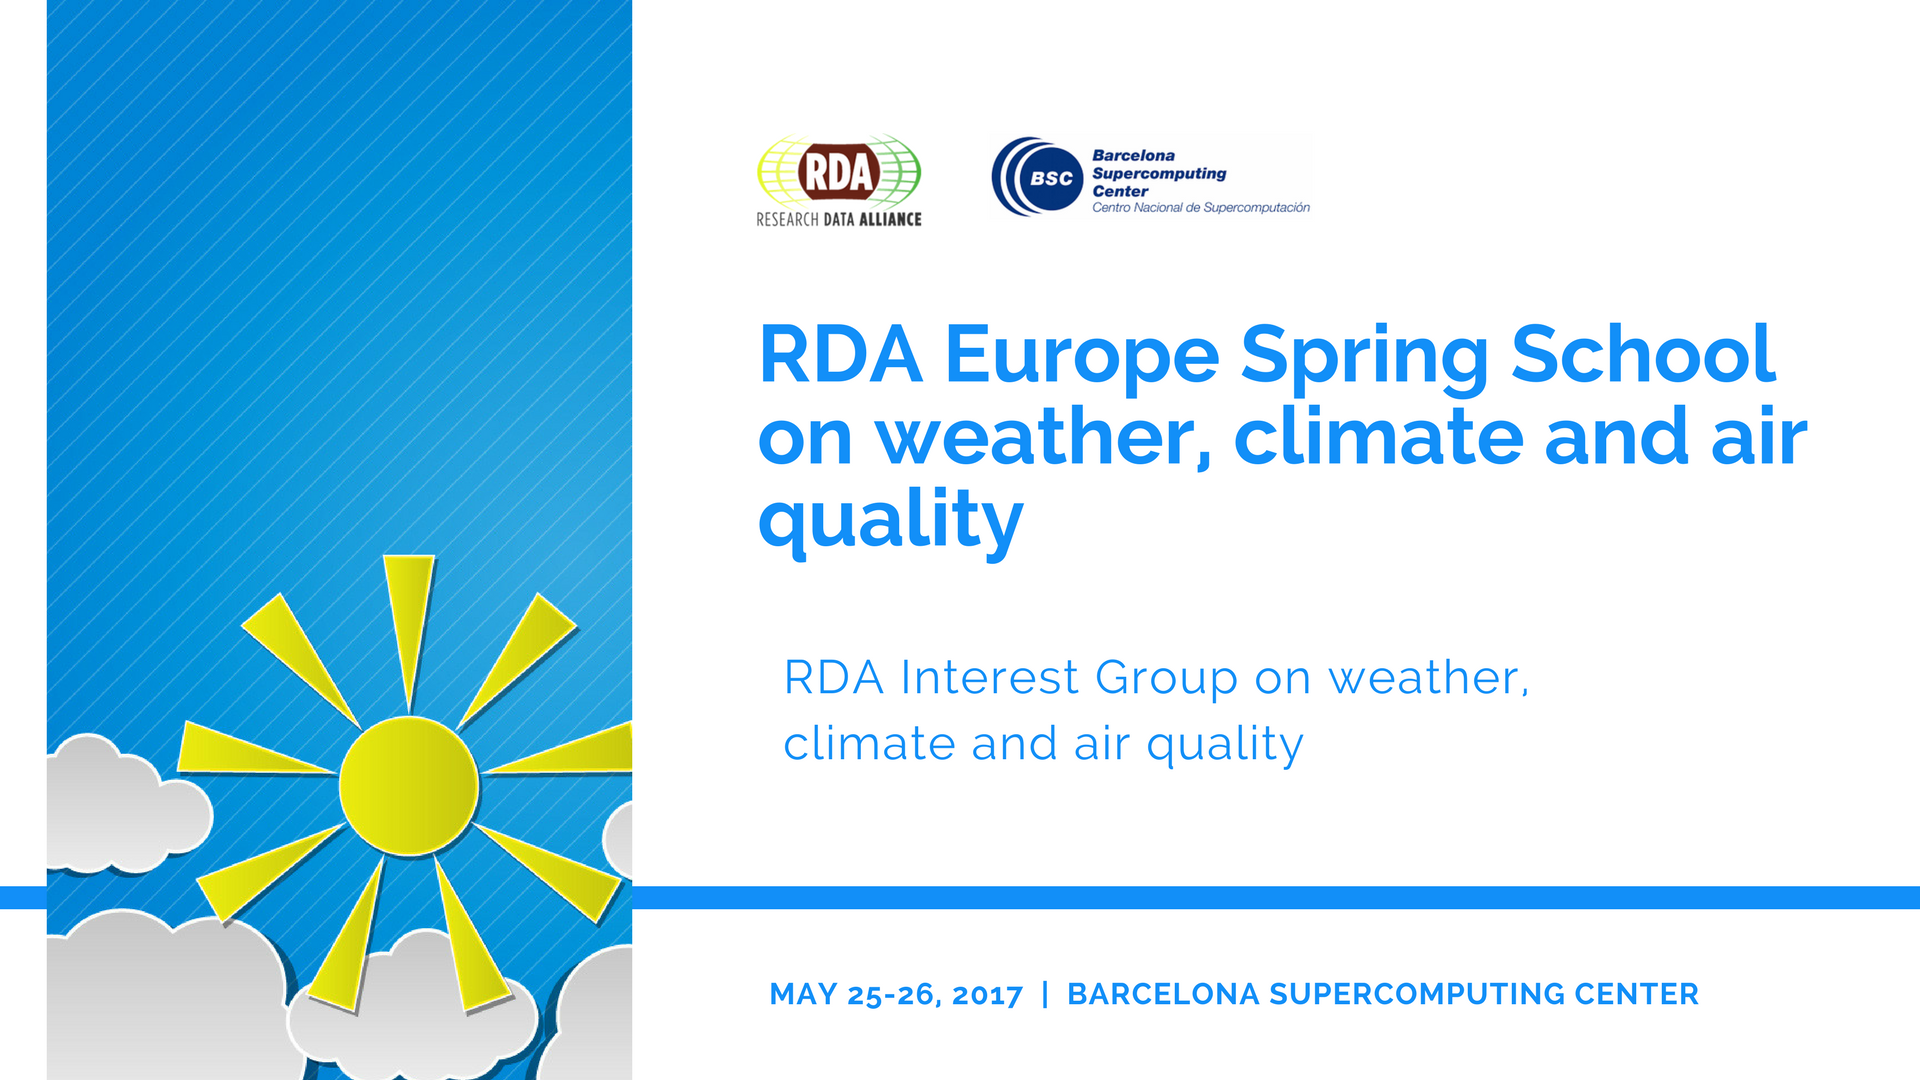 RDA Europe spring school on weather, climate and air quality, 25-26 May 2017, Barcelona